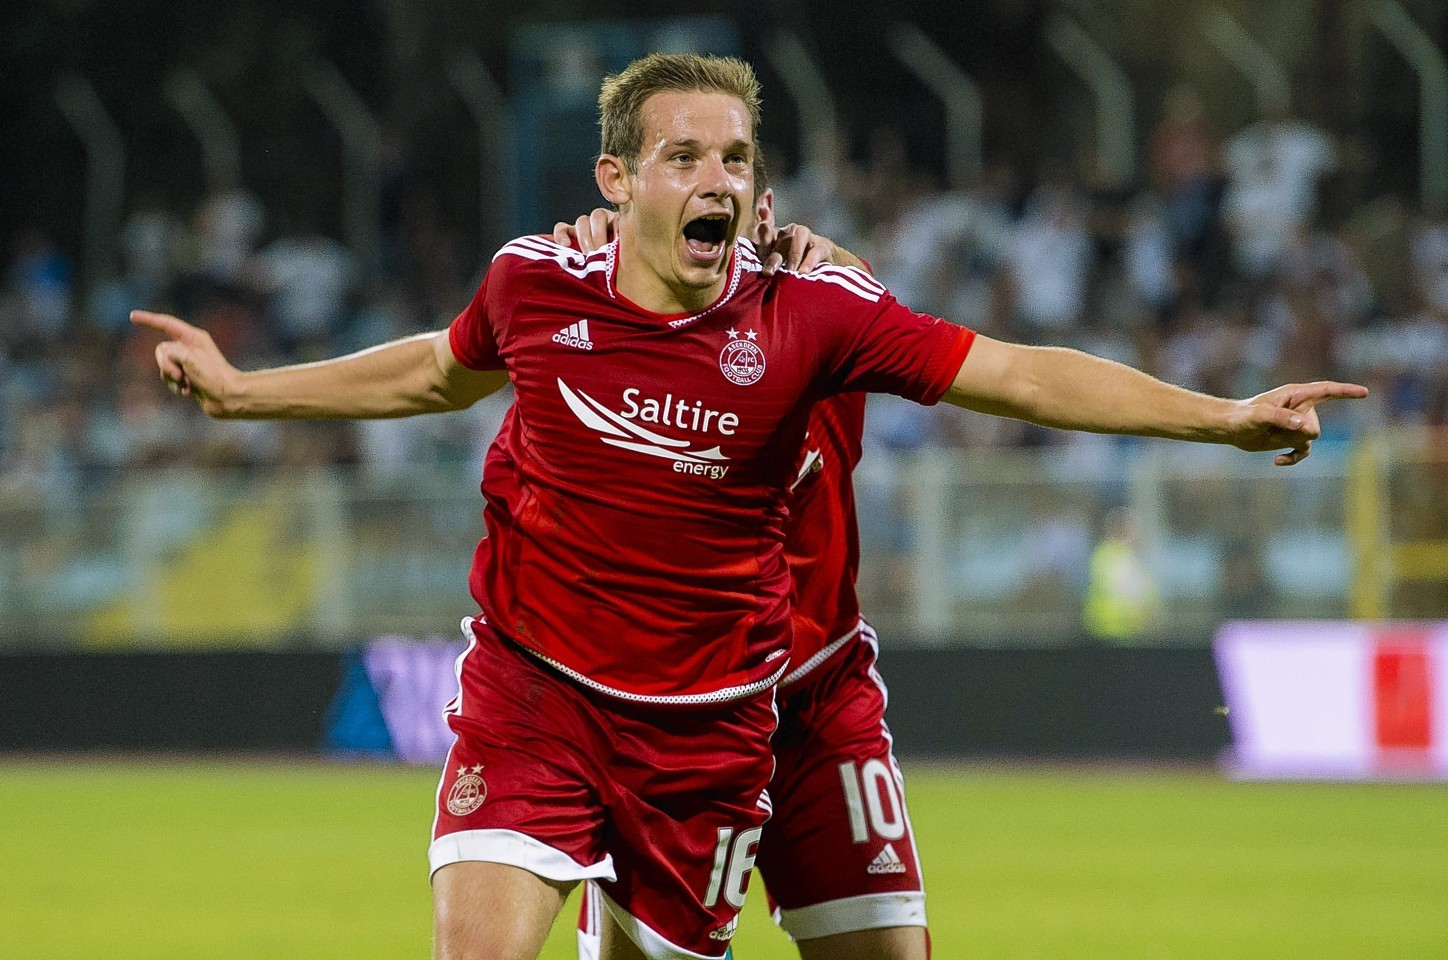 Peter Pawlett has signed a pre-contract agreement with MK Dons.